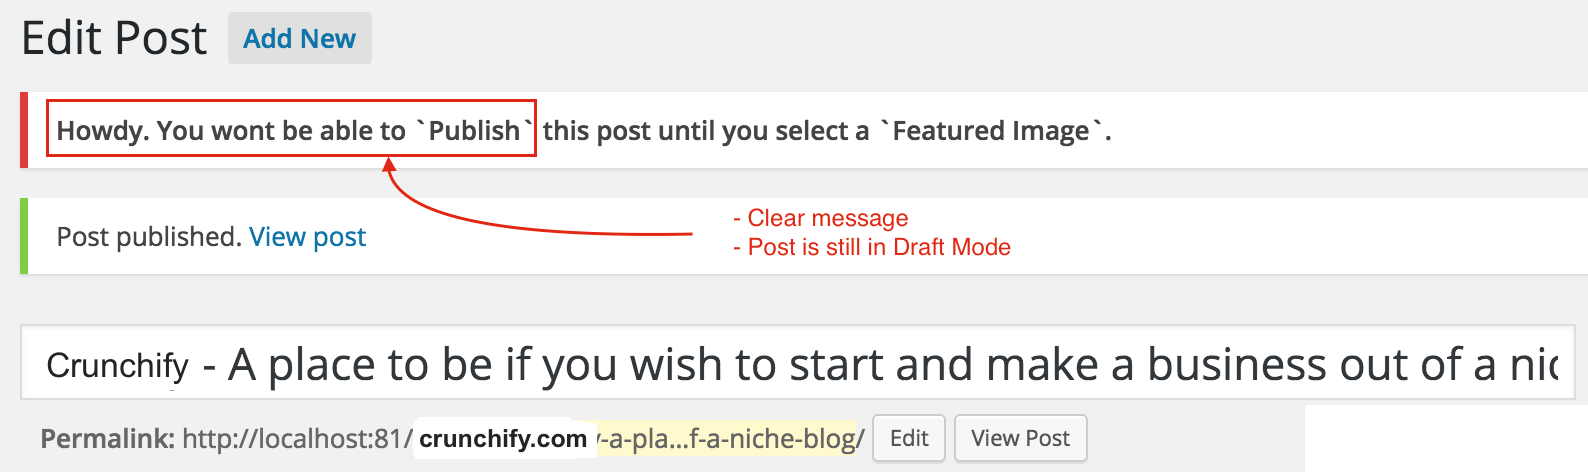 Dont allow to publish post without Featured image on Crunchify